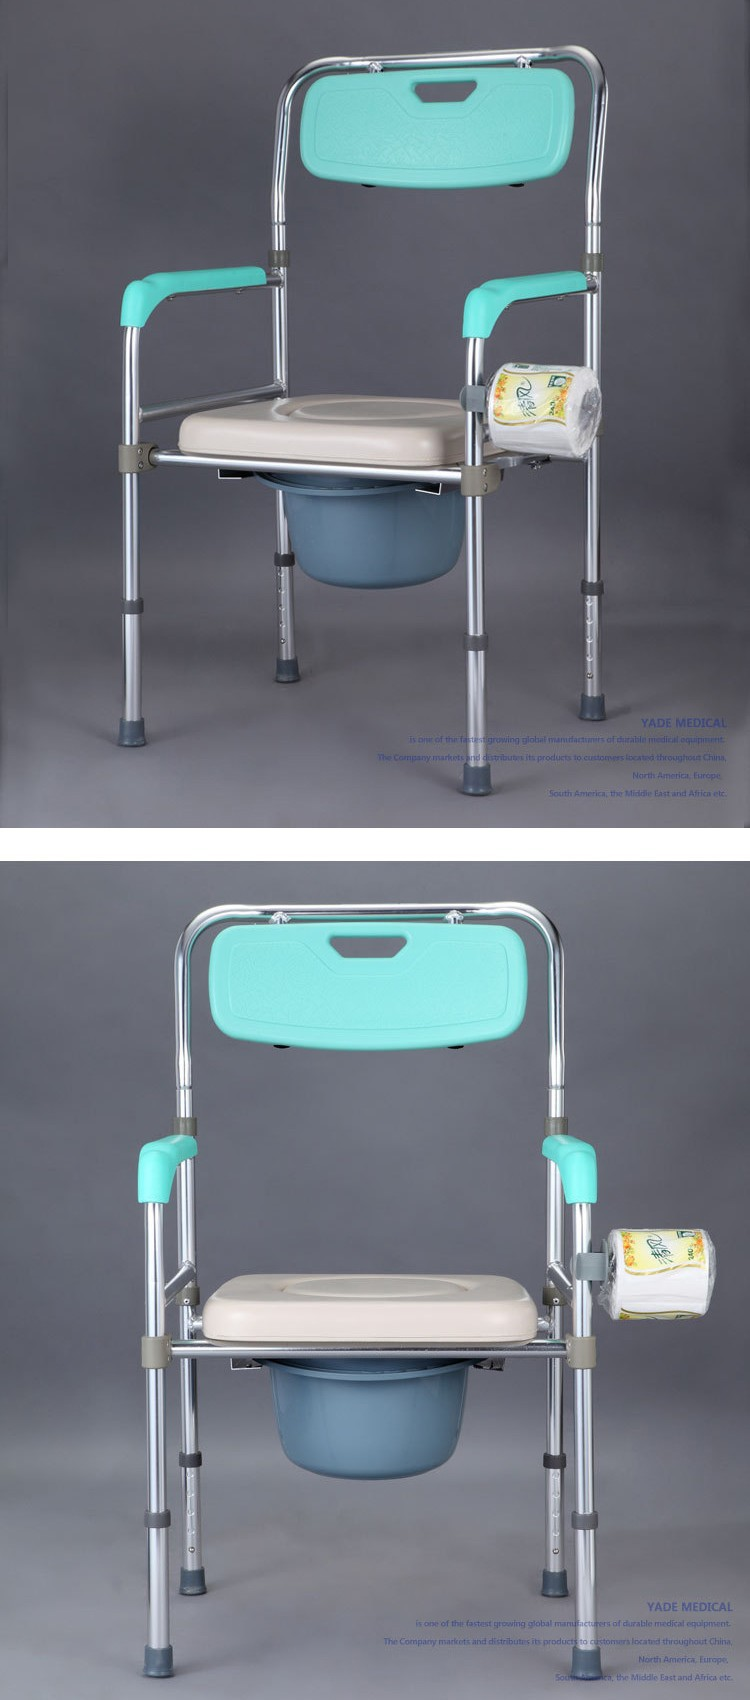 1x Multifunctional Bathroom Shower Chair Folding Toilet Potty Chair ...